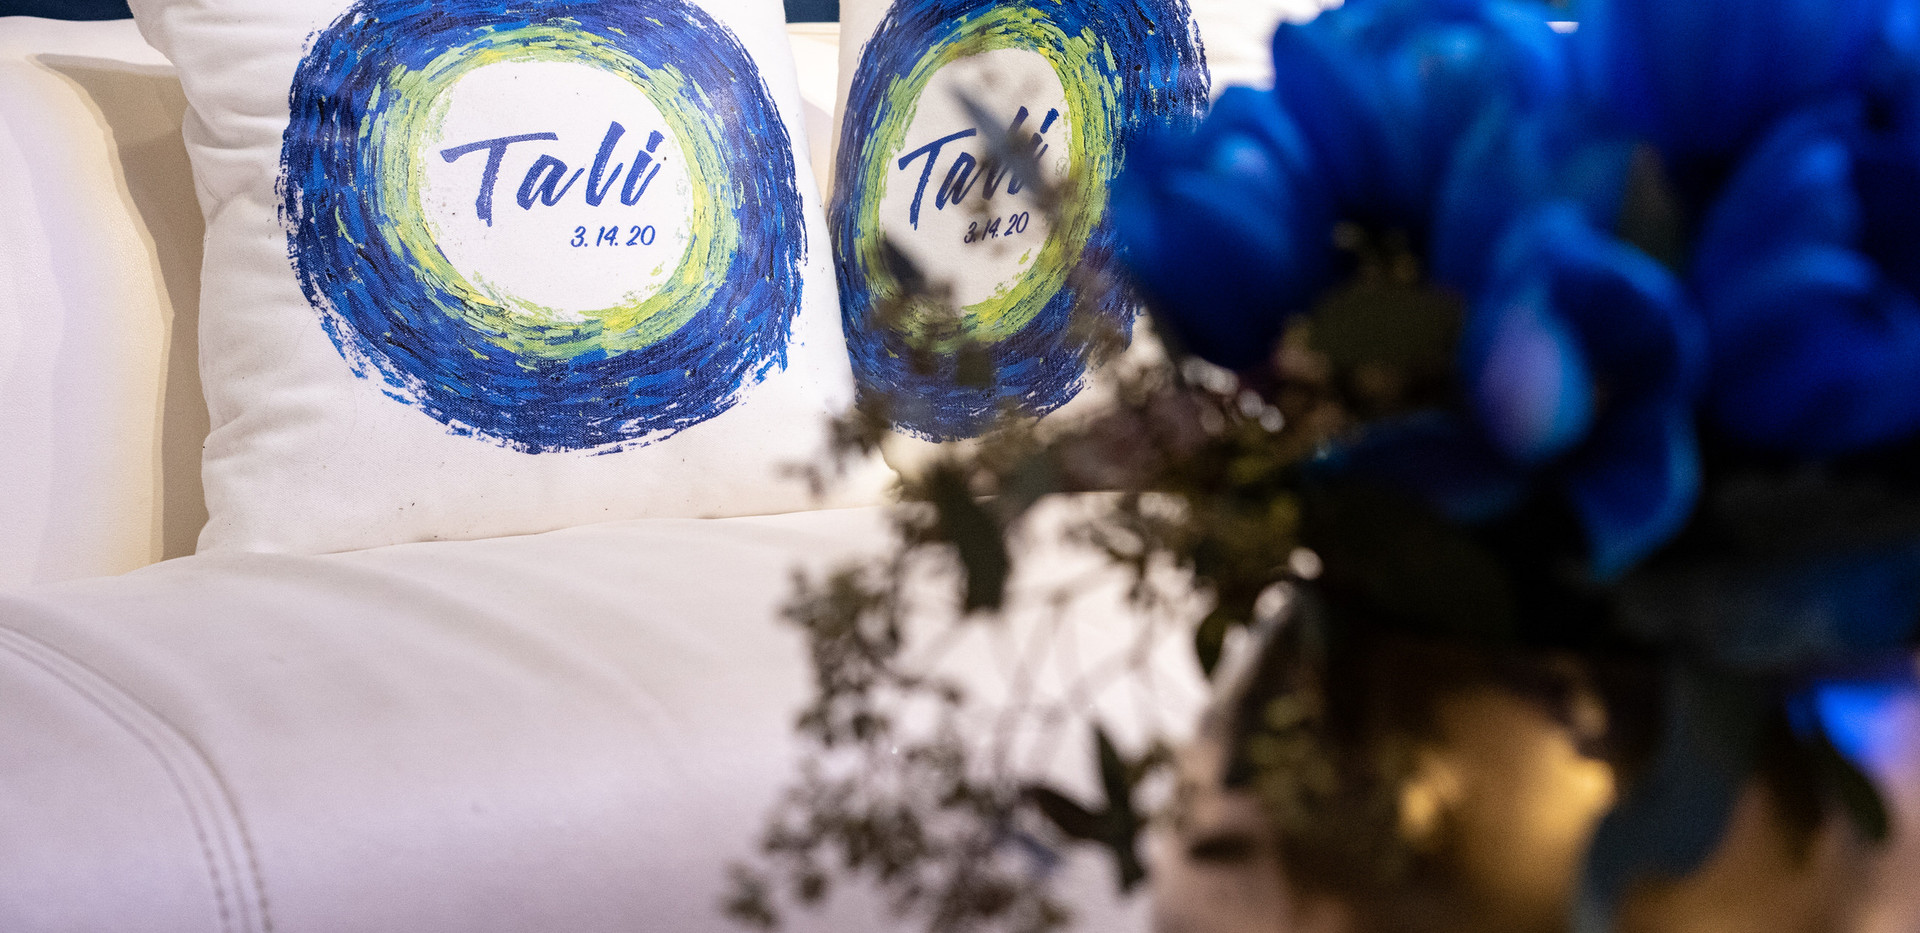 Starry Night Themed Party Decor